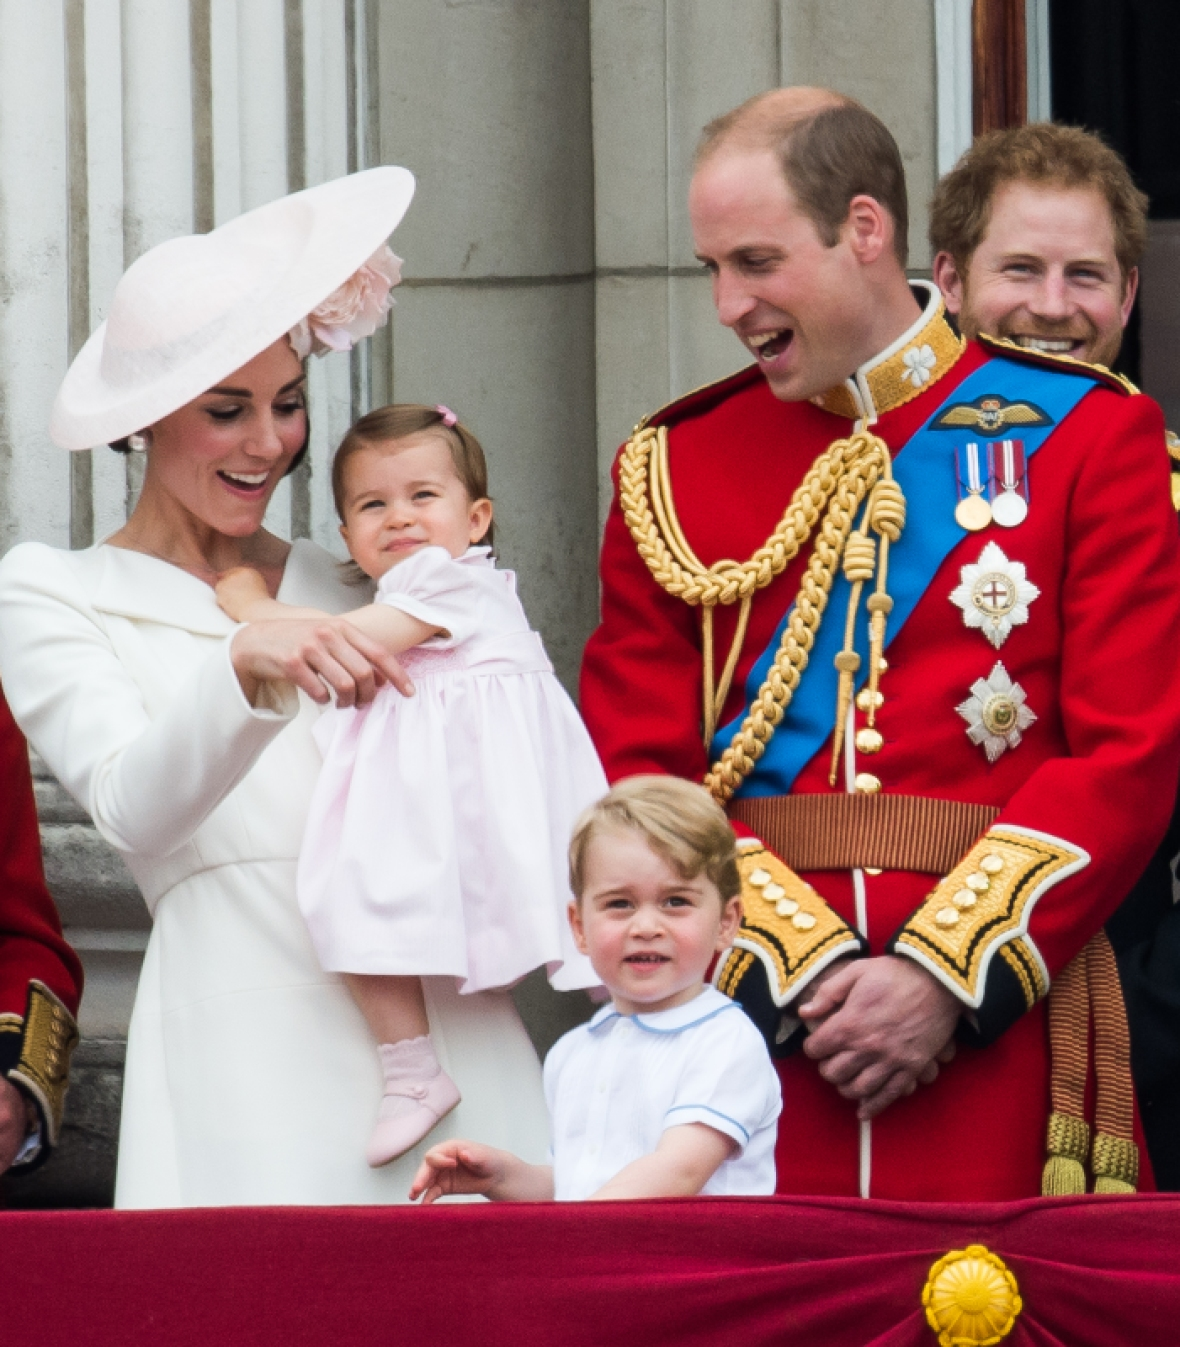 royal family getty images